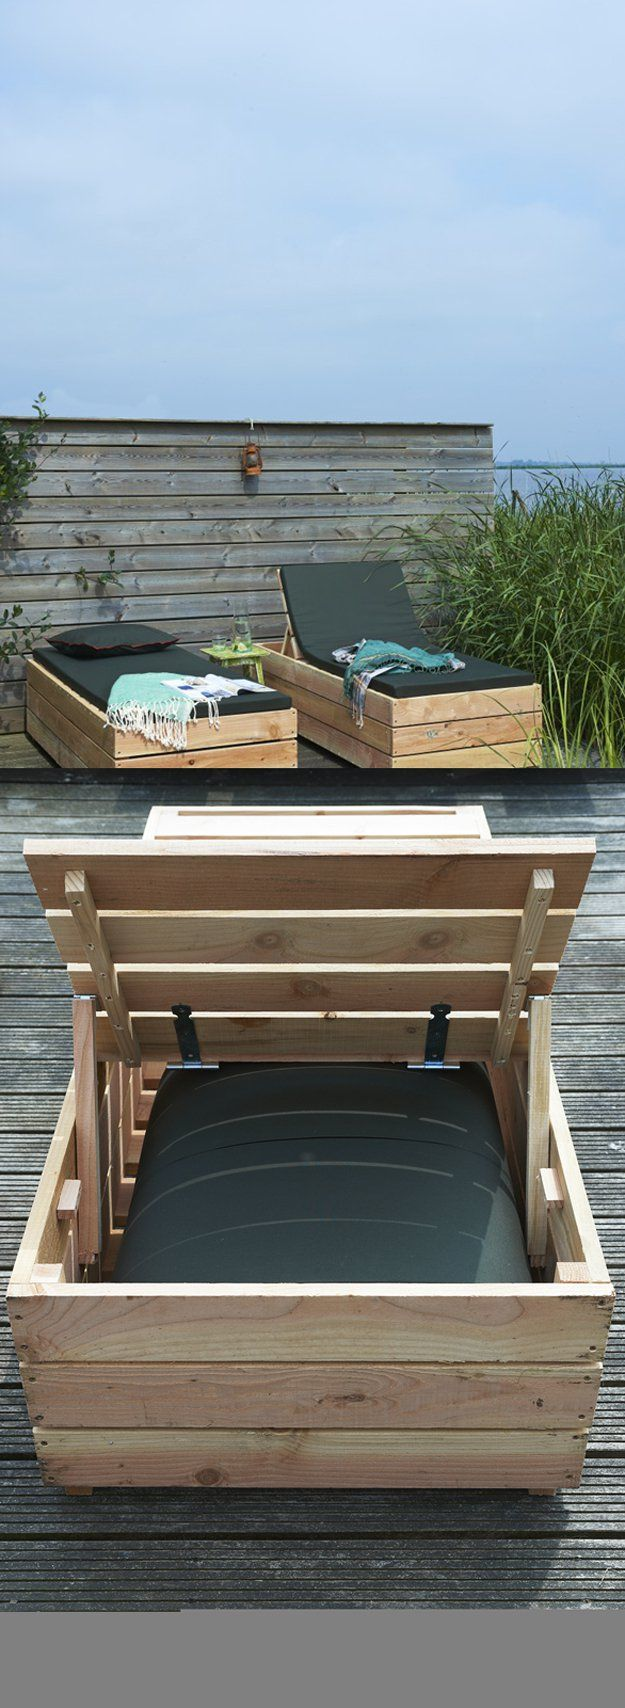 17 Outdoor Pallet Projects For DIY Furniture